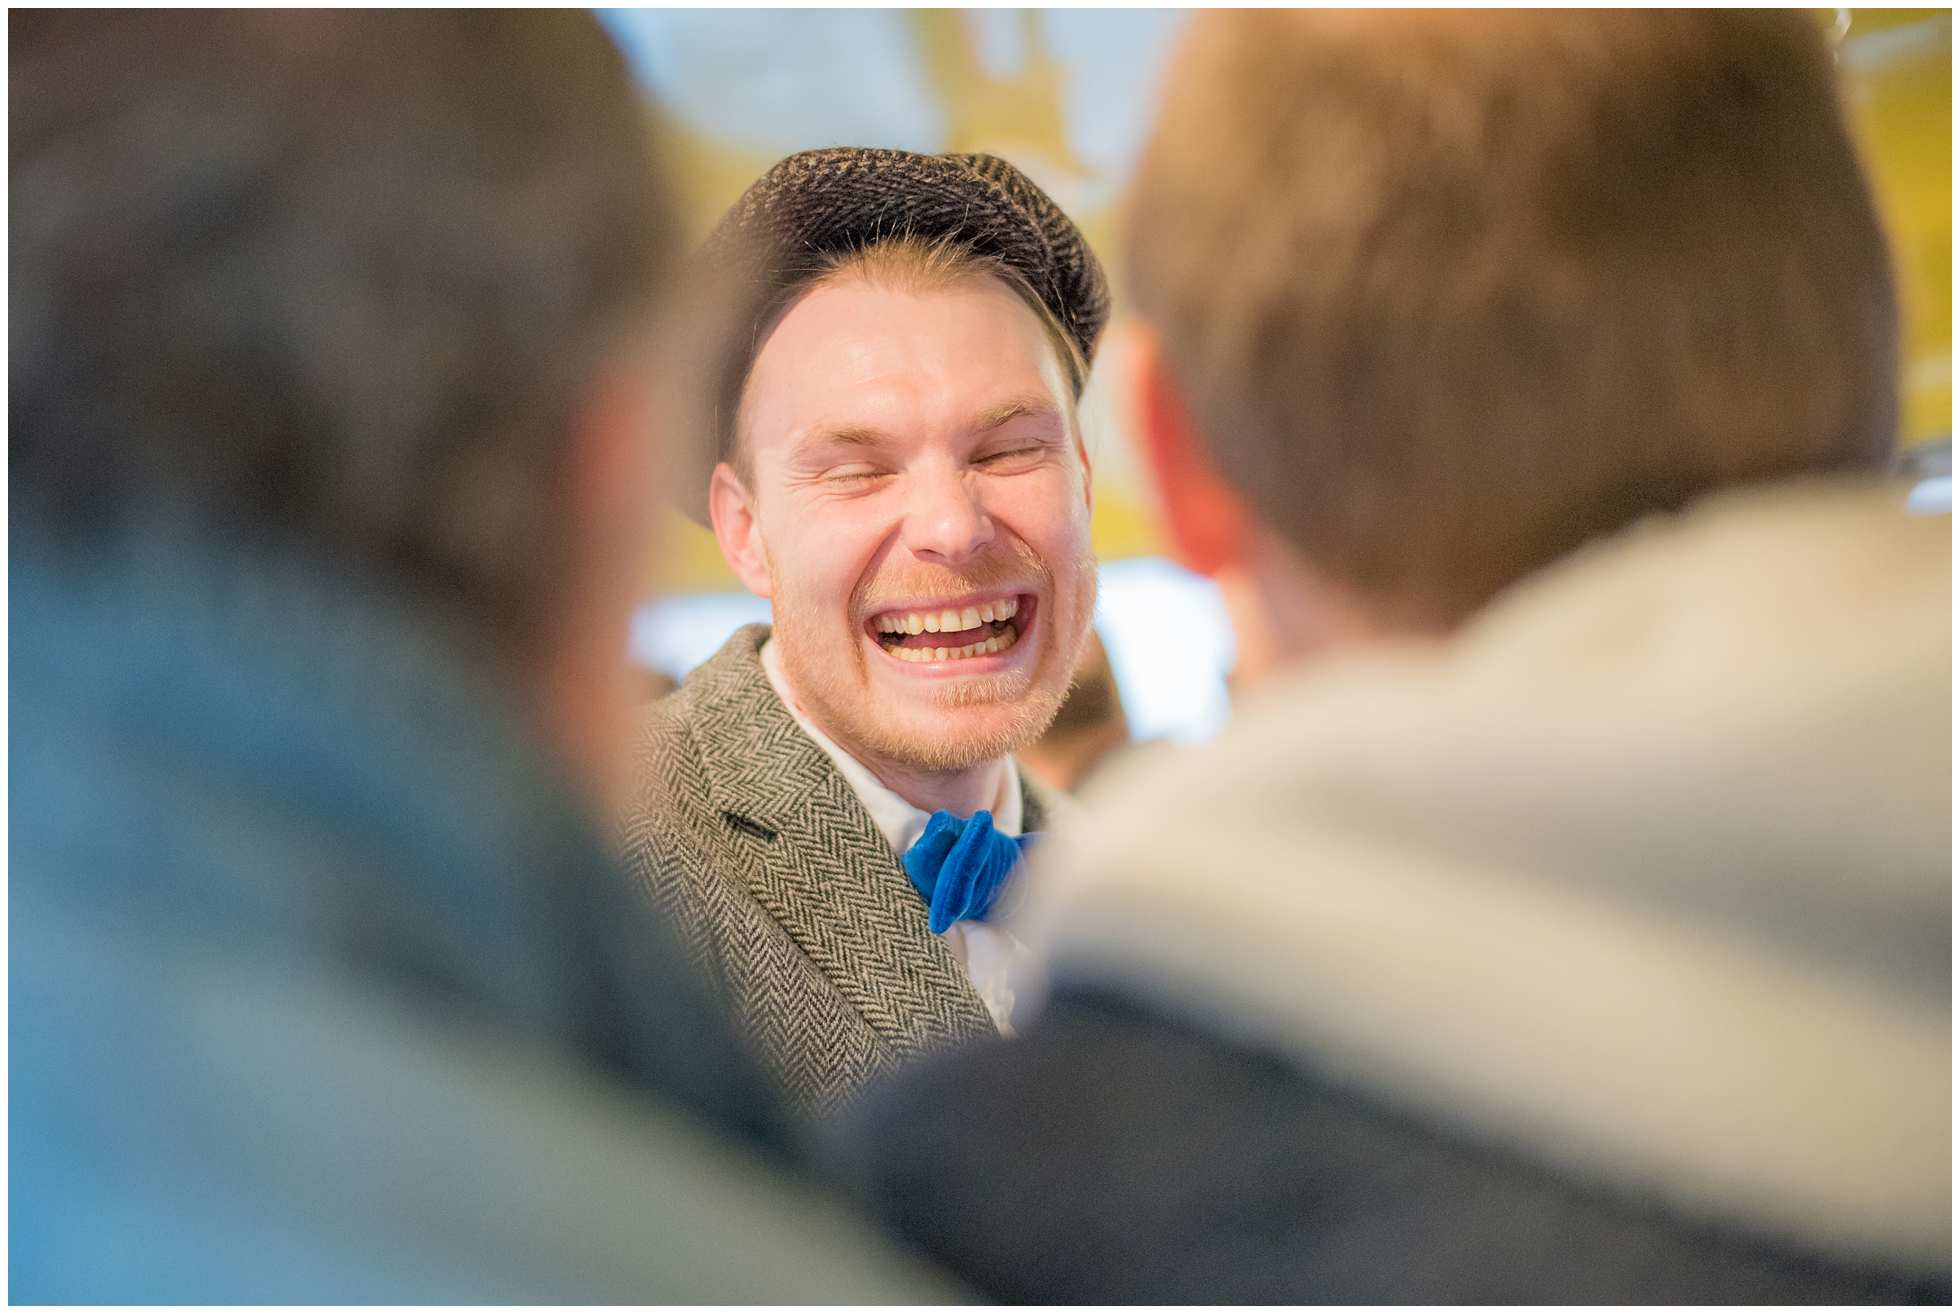 Laughing Chris on Routemaster bus london wedding photography